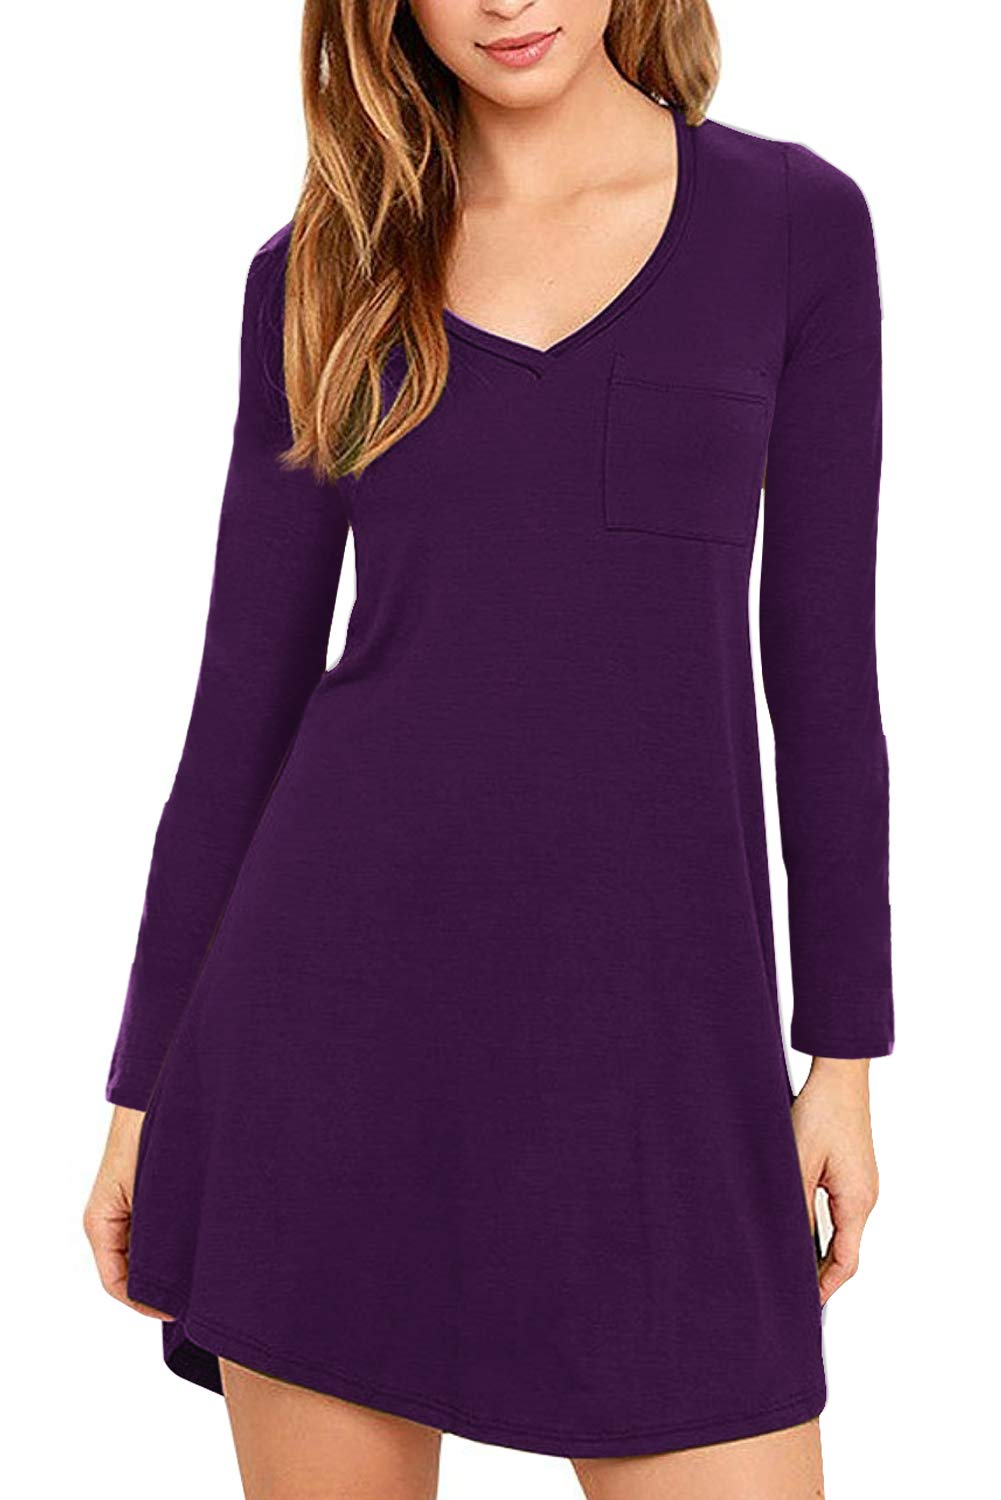 Eanklosco Womens Casual Short Sleeve Plain Pocket V Neck T Shirt Tunic Dress (Purple-1, M)